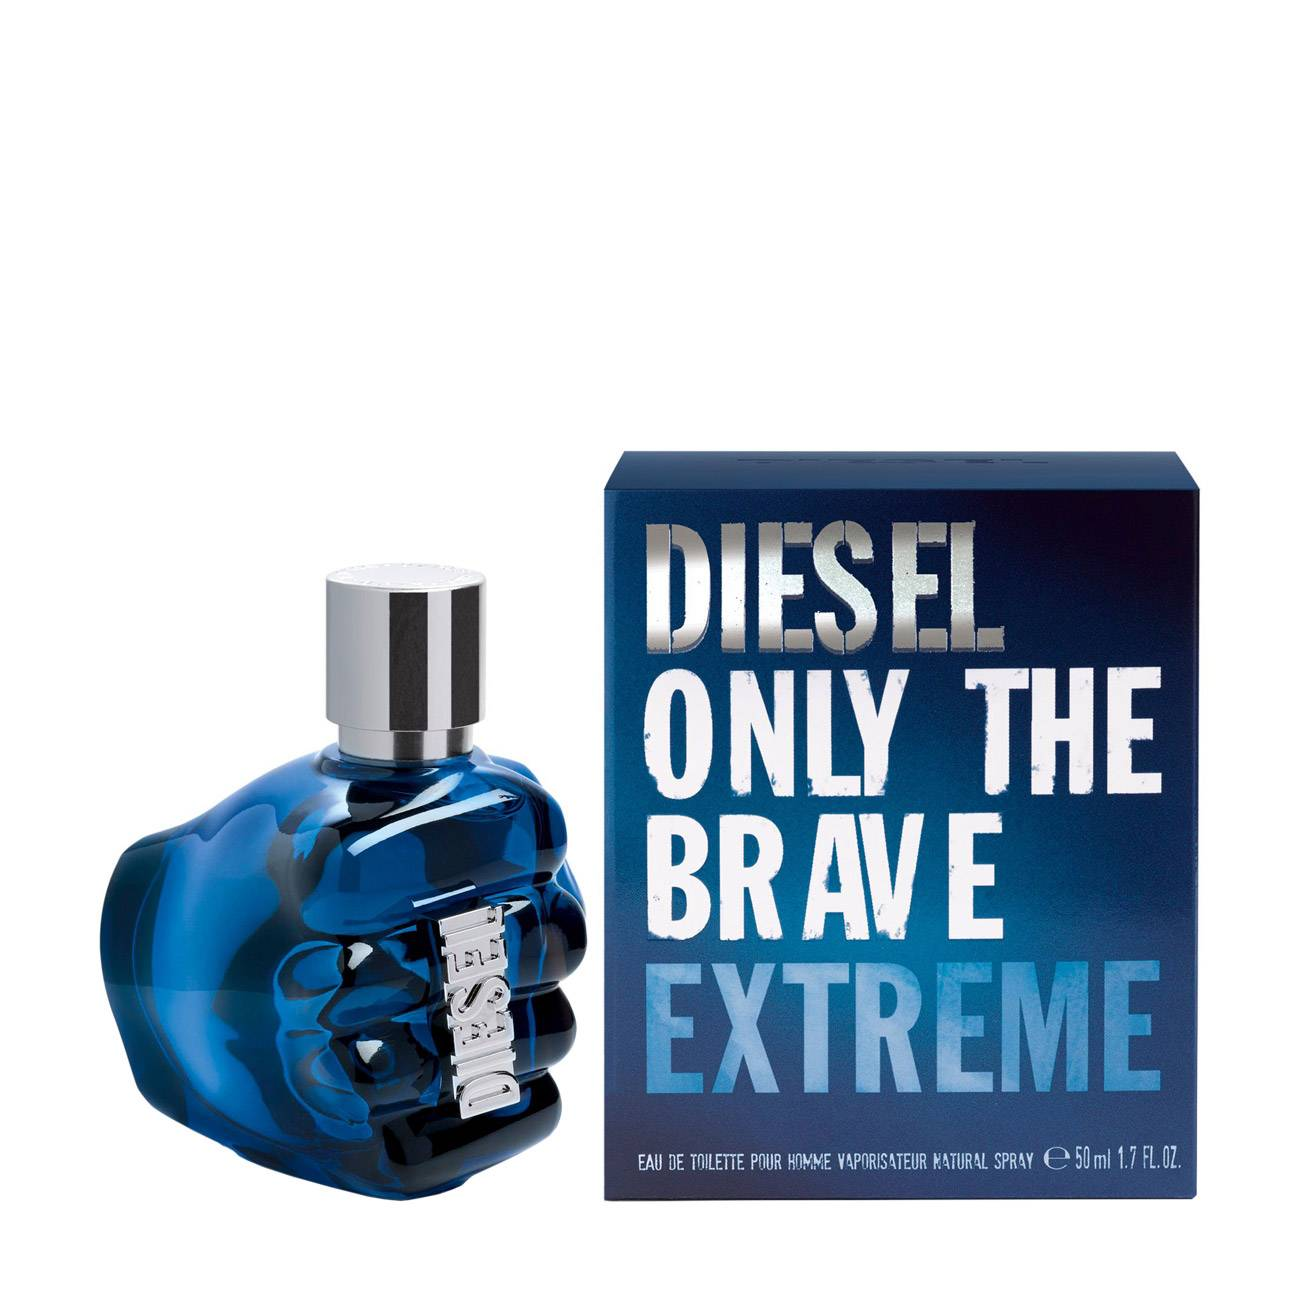 ONLY THE BRAVE EXTREME 50ml imagine produs